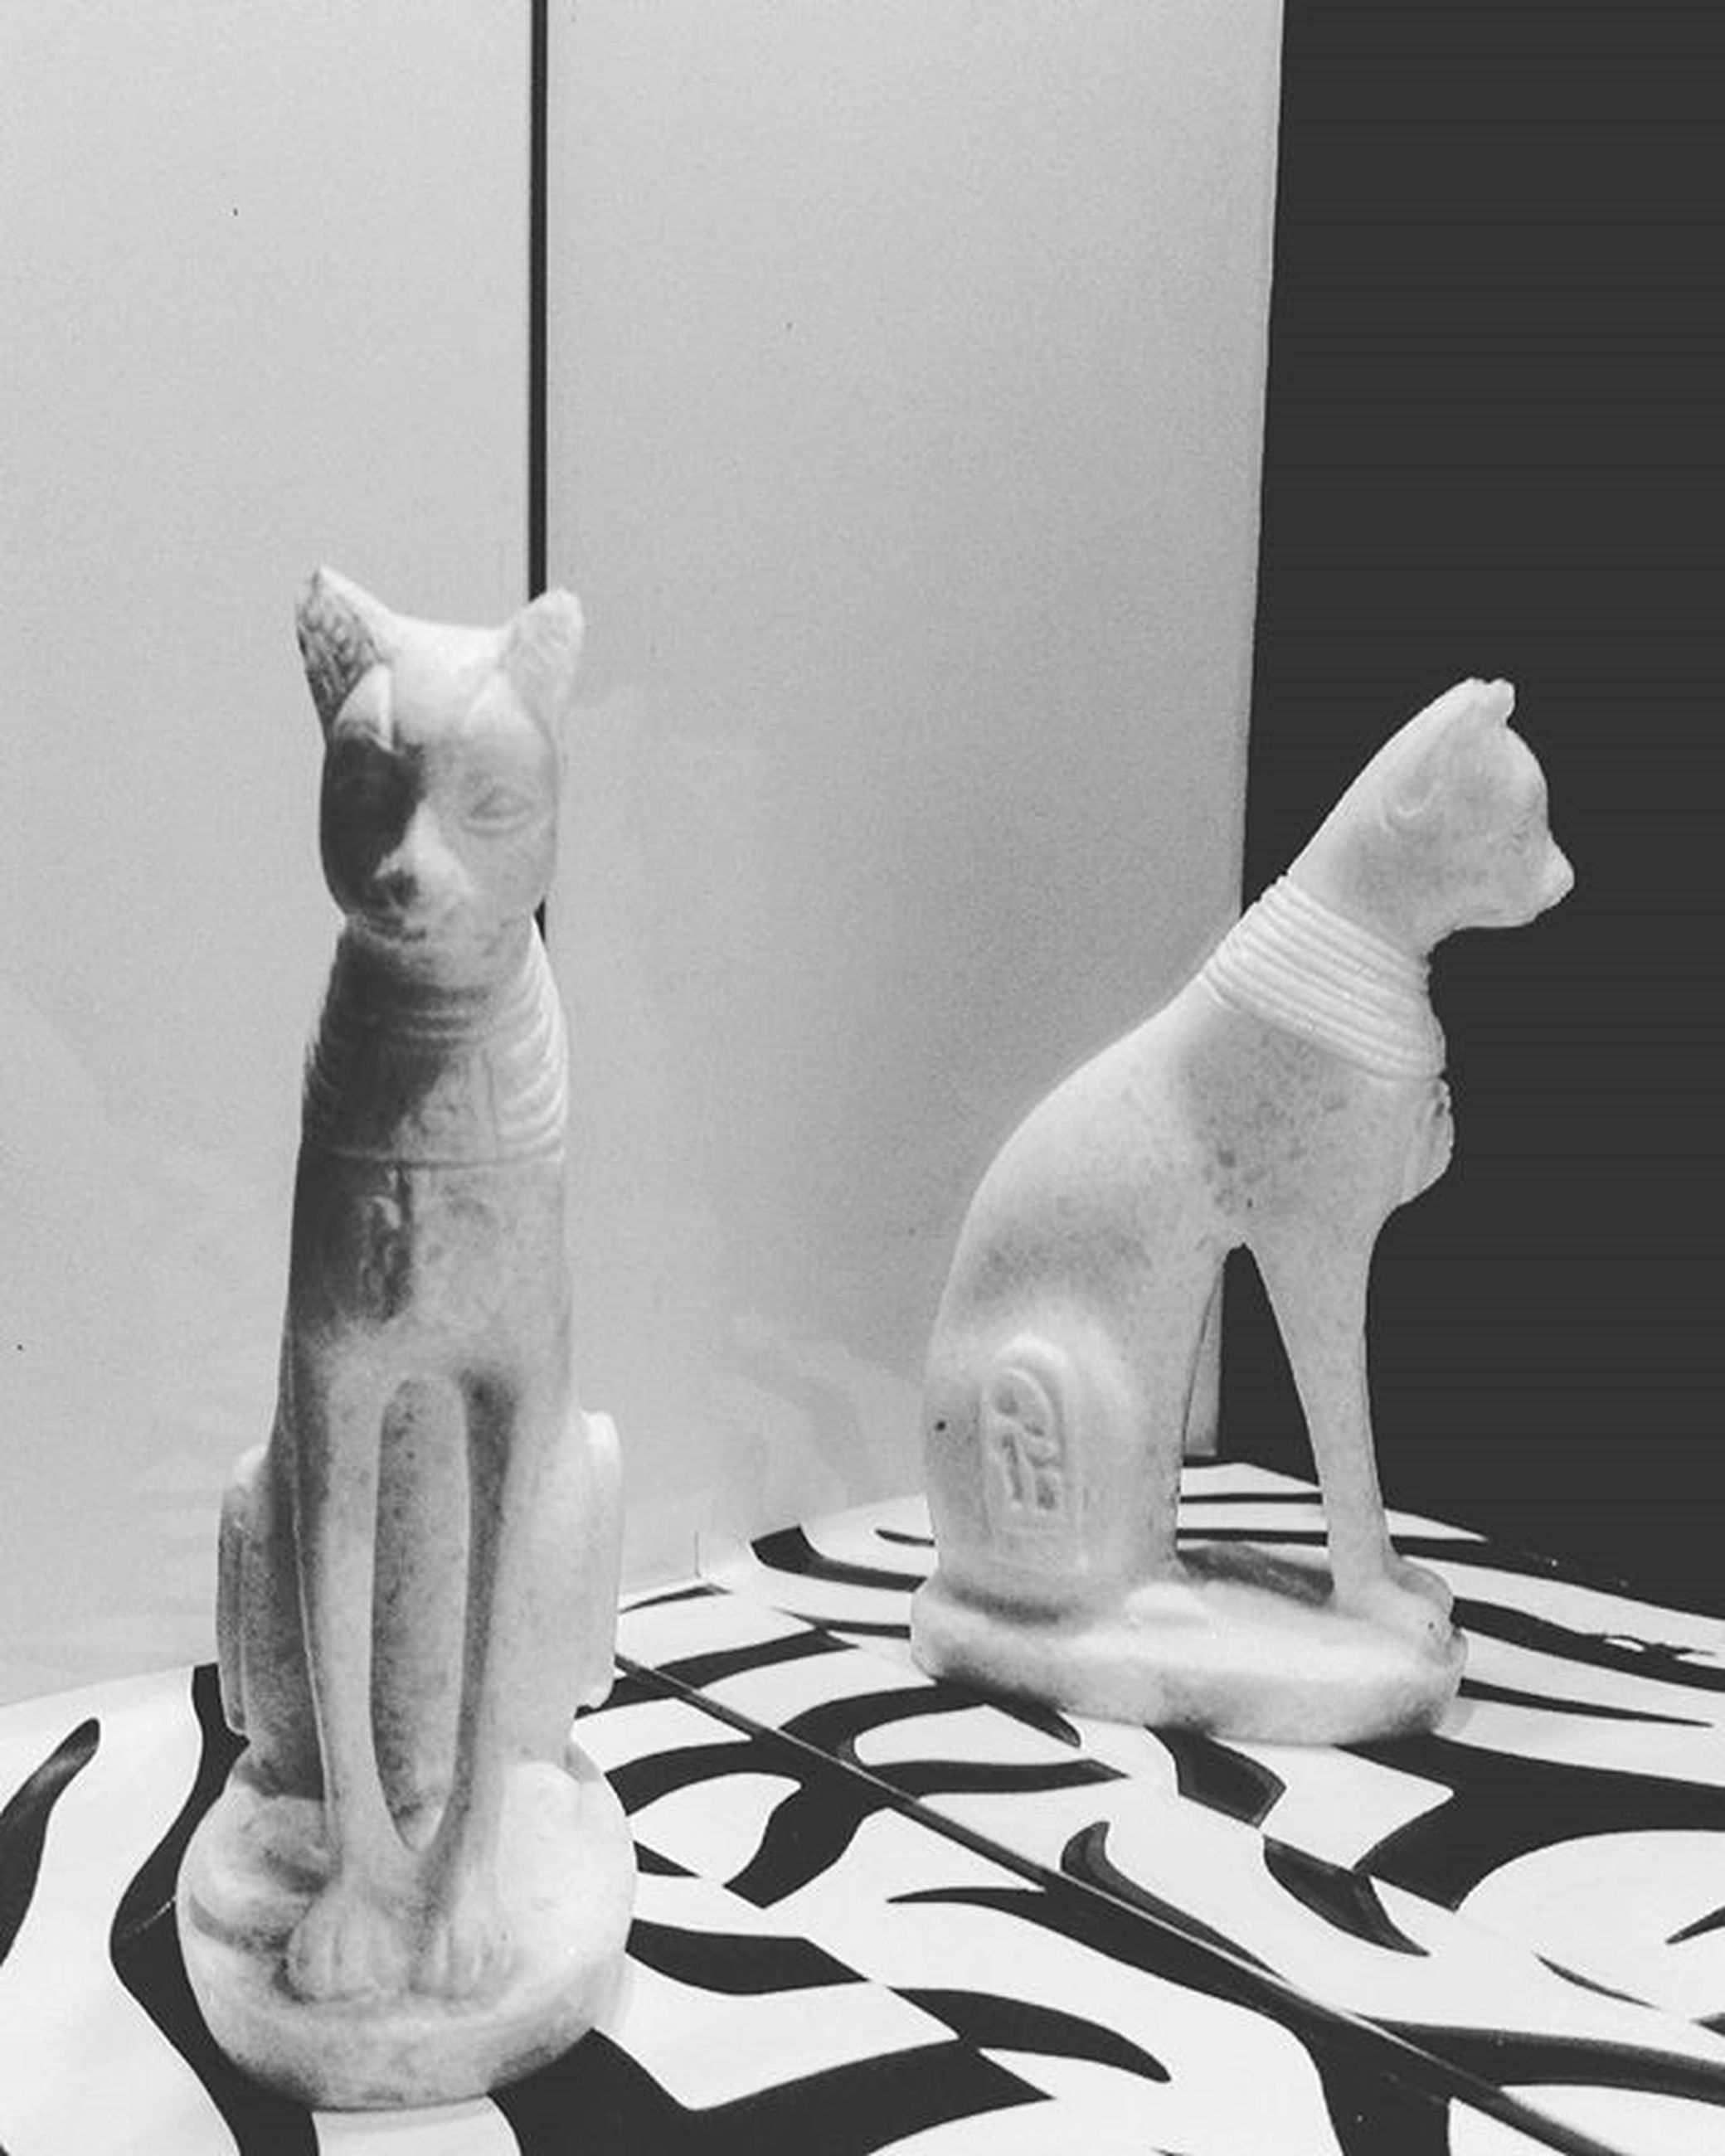 art and craft, sculpture, human representation, statue, art, animal representation, creativity, indoors, craft, built structure, no people, architecture, animal themes, carving - craft product, wall - building feature, day, bird, reflection